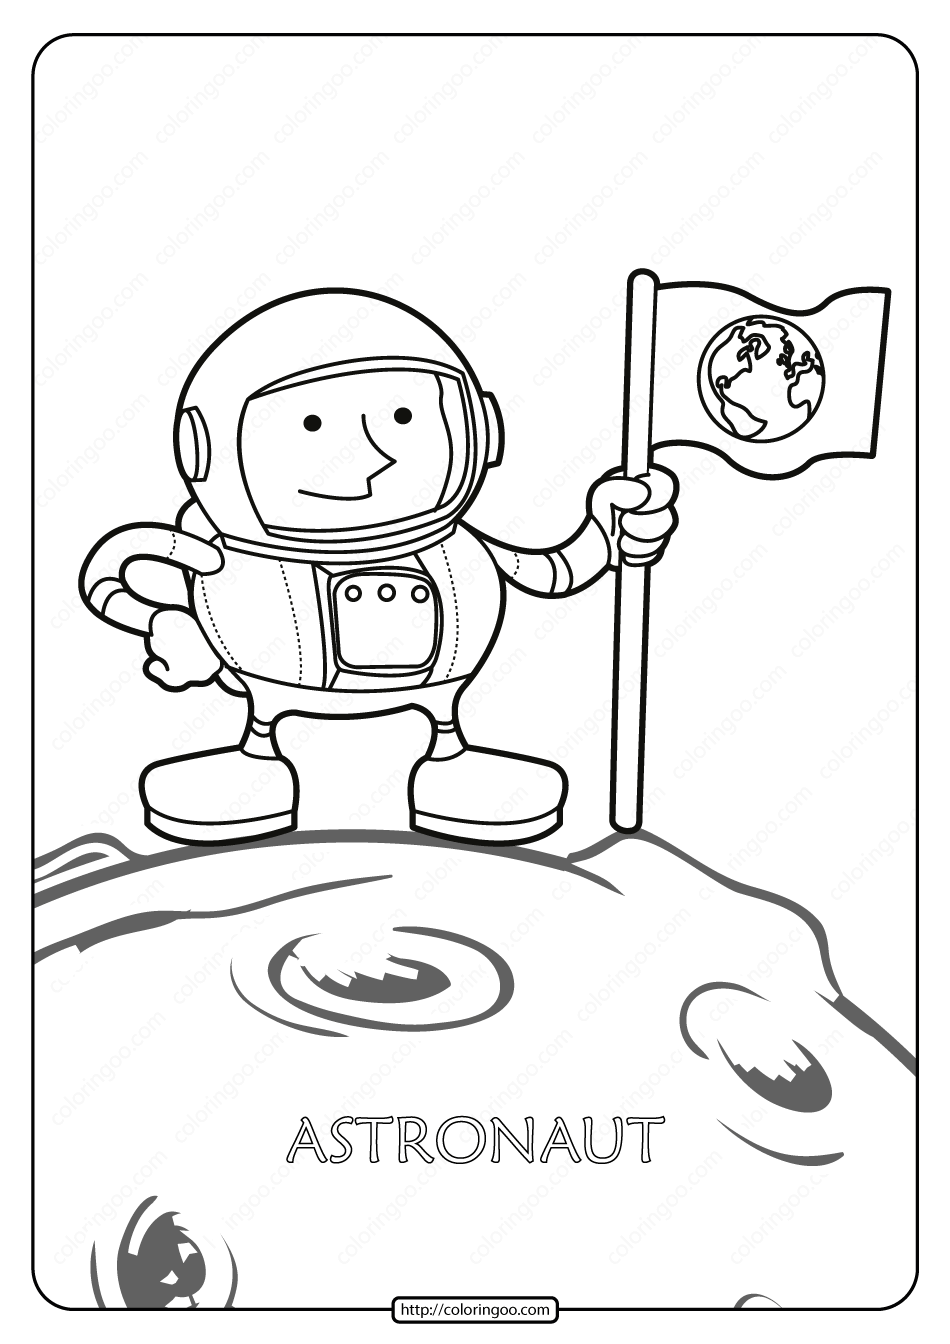 Printable Astronaut Pdf Coloring Page Coloring Pages Color Free Printables